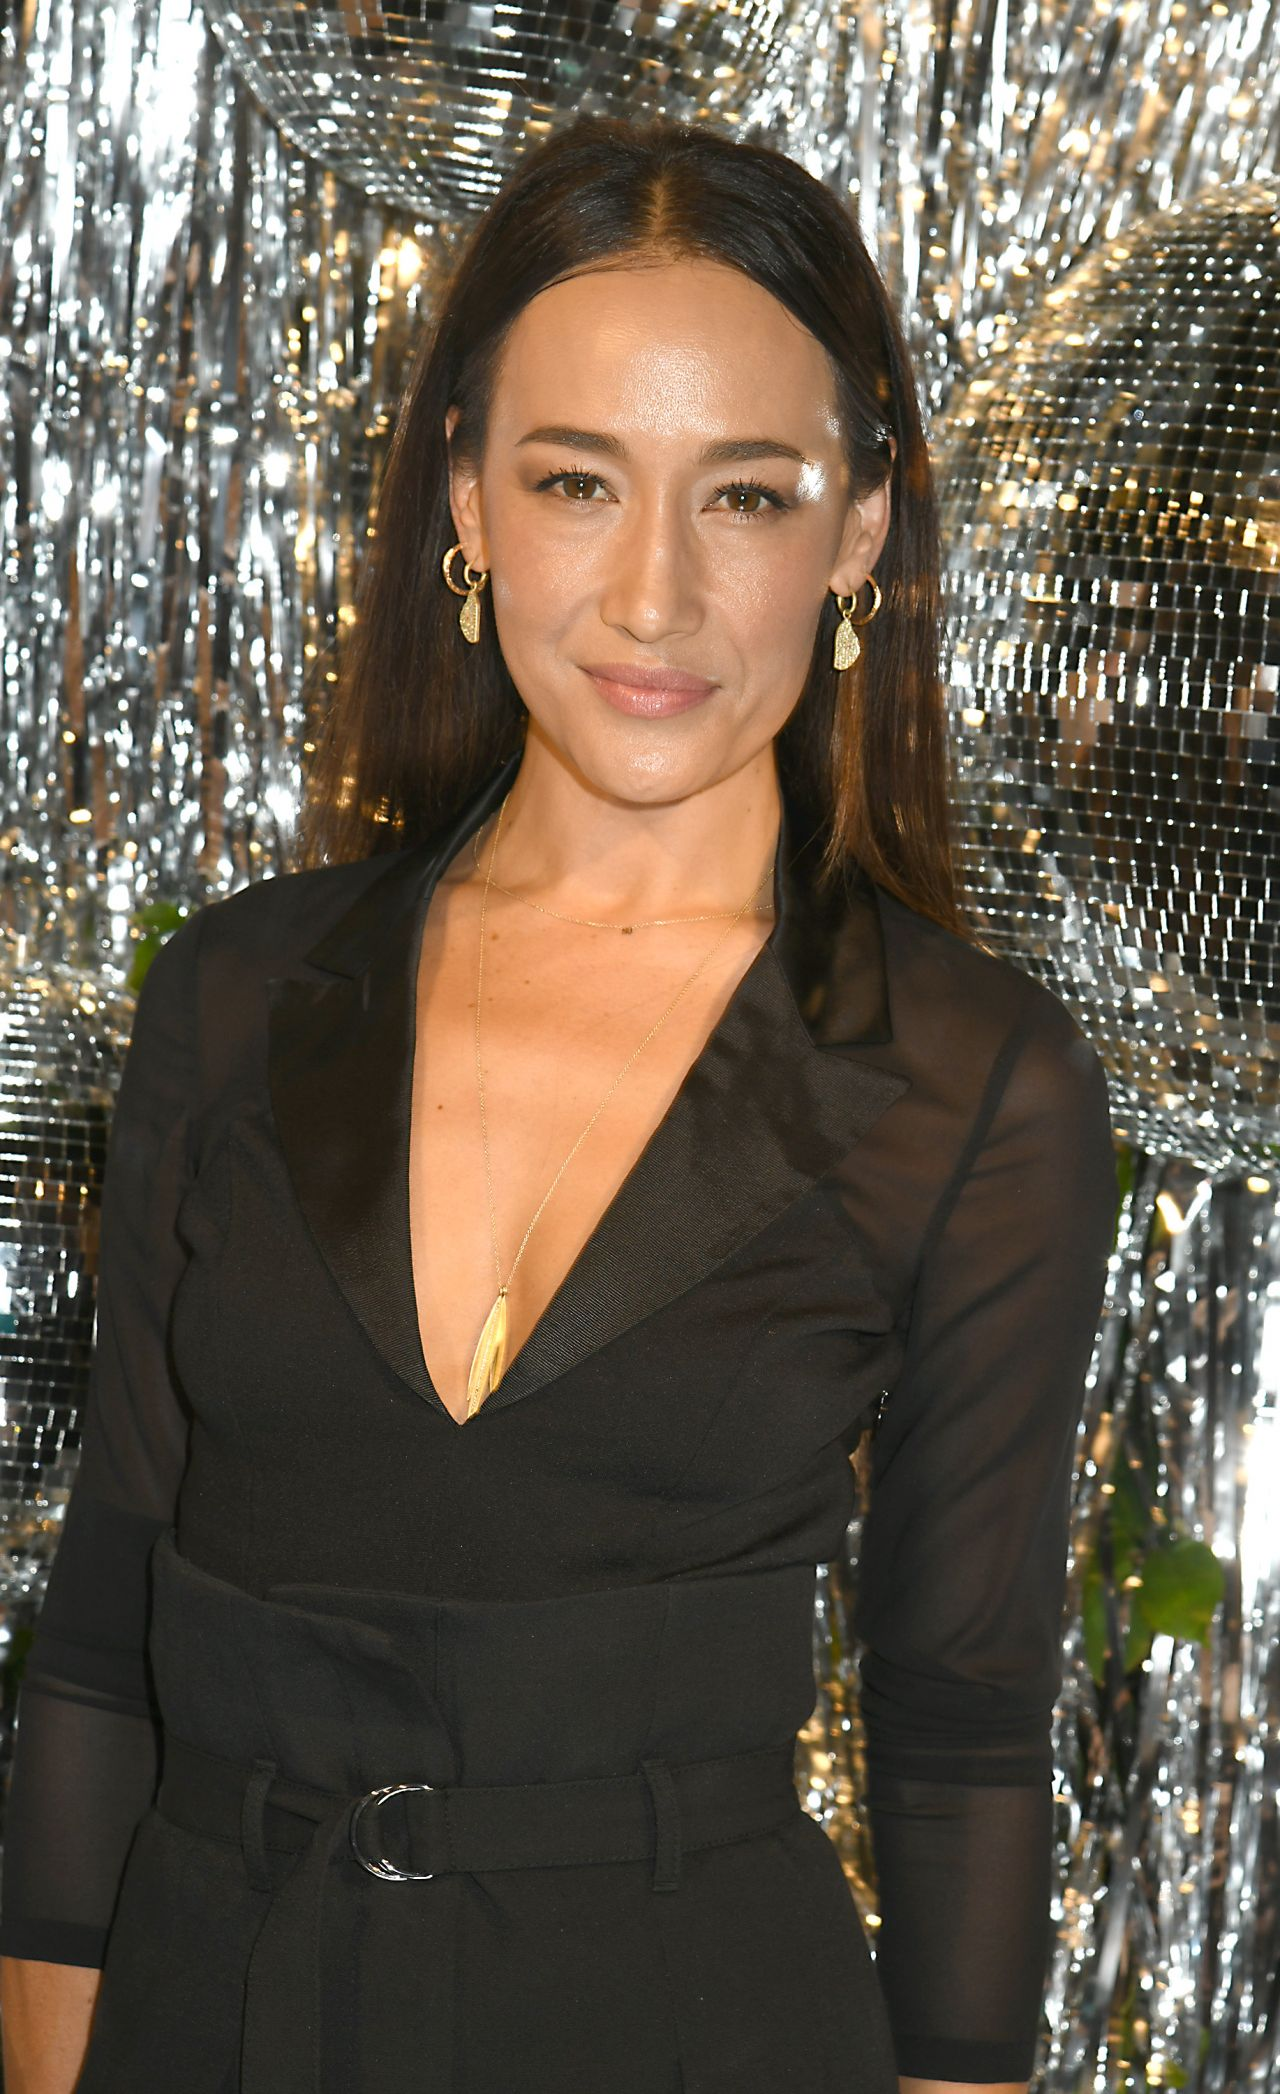 maggie q and shane westmaggie q instagram, maggie q, maggie q wedding, maggie q and dylan mcdermott, maggie q and shane west, maggie q mission impossible 3, maggie q polish, maggie q parents, maggie q net worth, maggie q and lyndsy fonseca relationship, maggie q imdb, maggie q age, maggie q earrings, maggie q gloves, maggie q инстаграм, maggie q 2019, maggie q husband, maggie q need for speed undercover, maggie q tattoo, maggie q nfs undercover